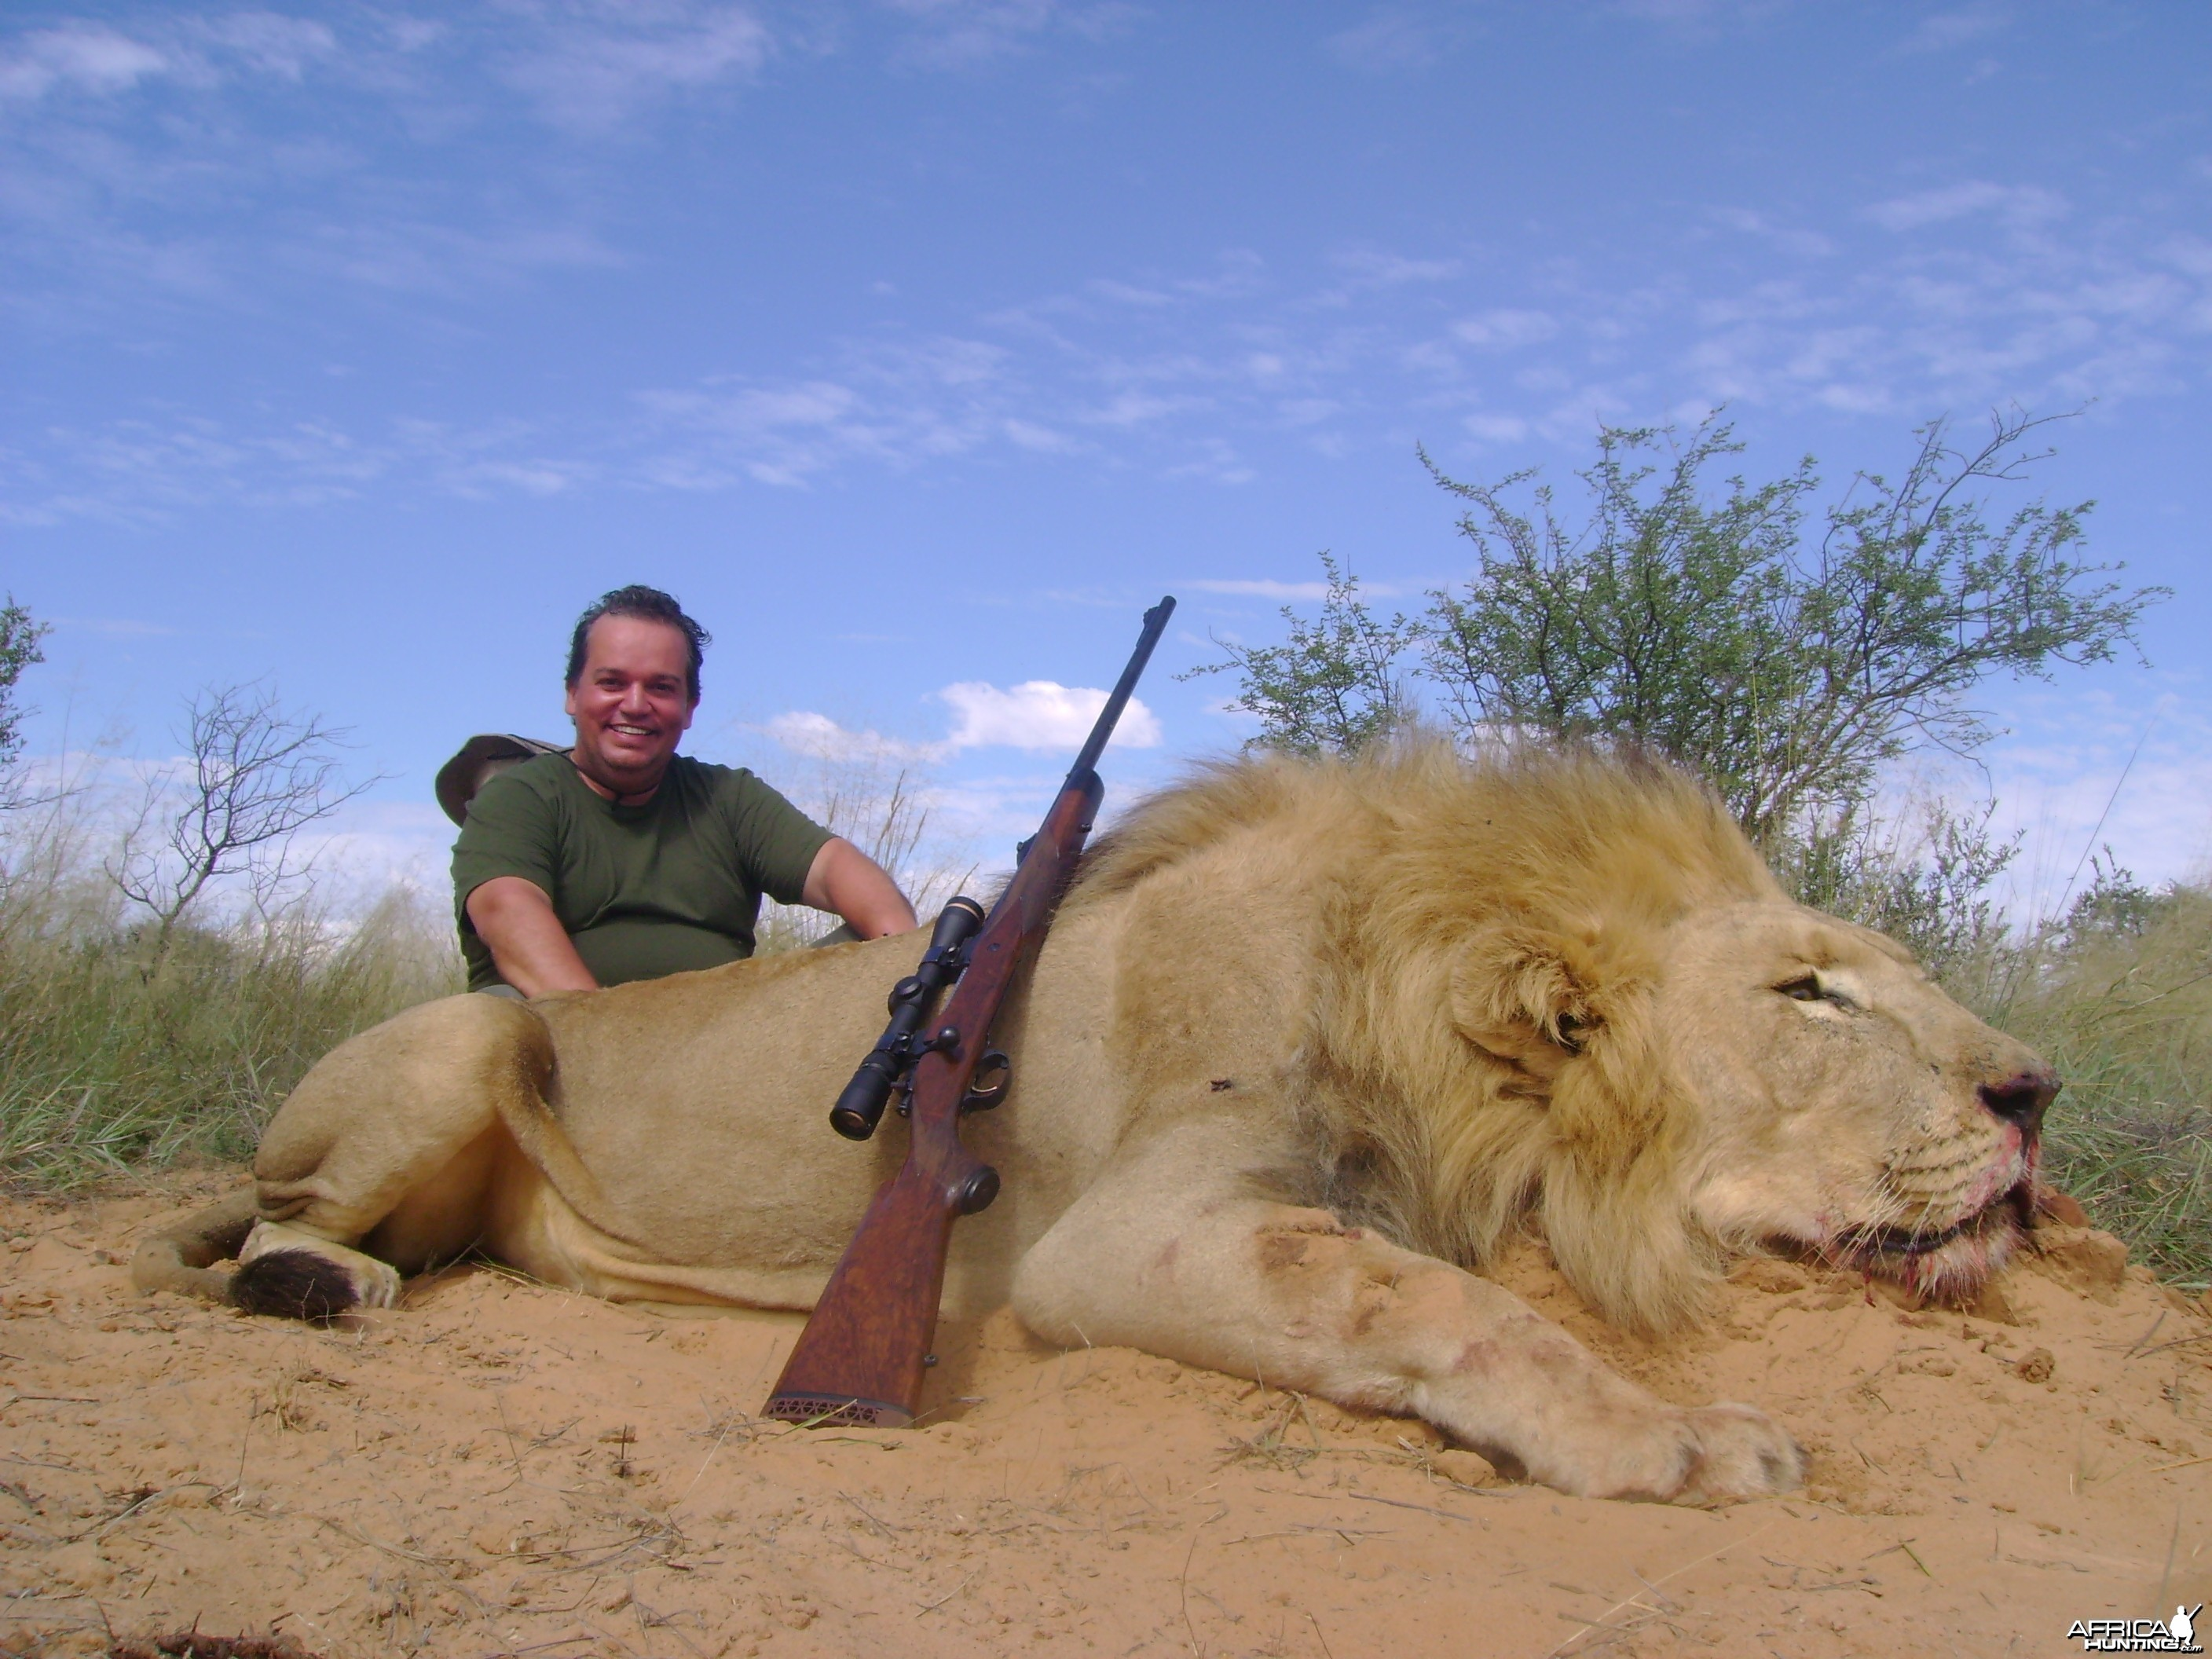 Lion hunted in South Africa